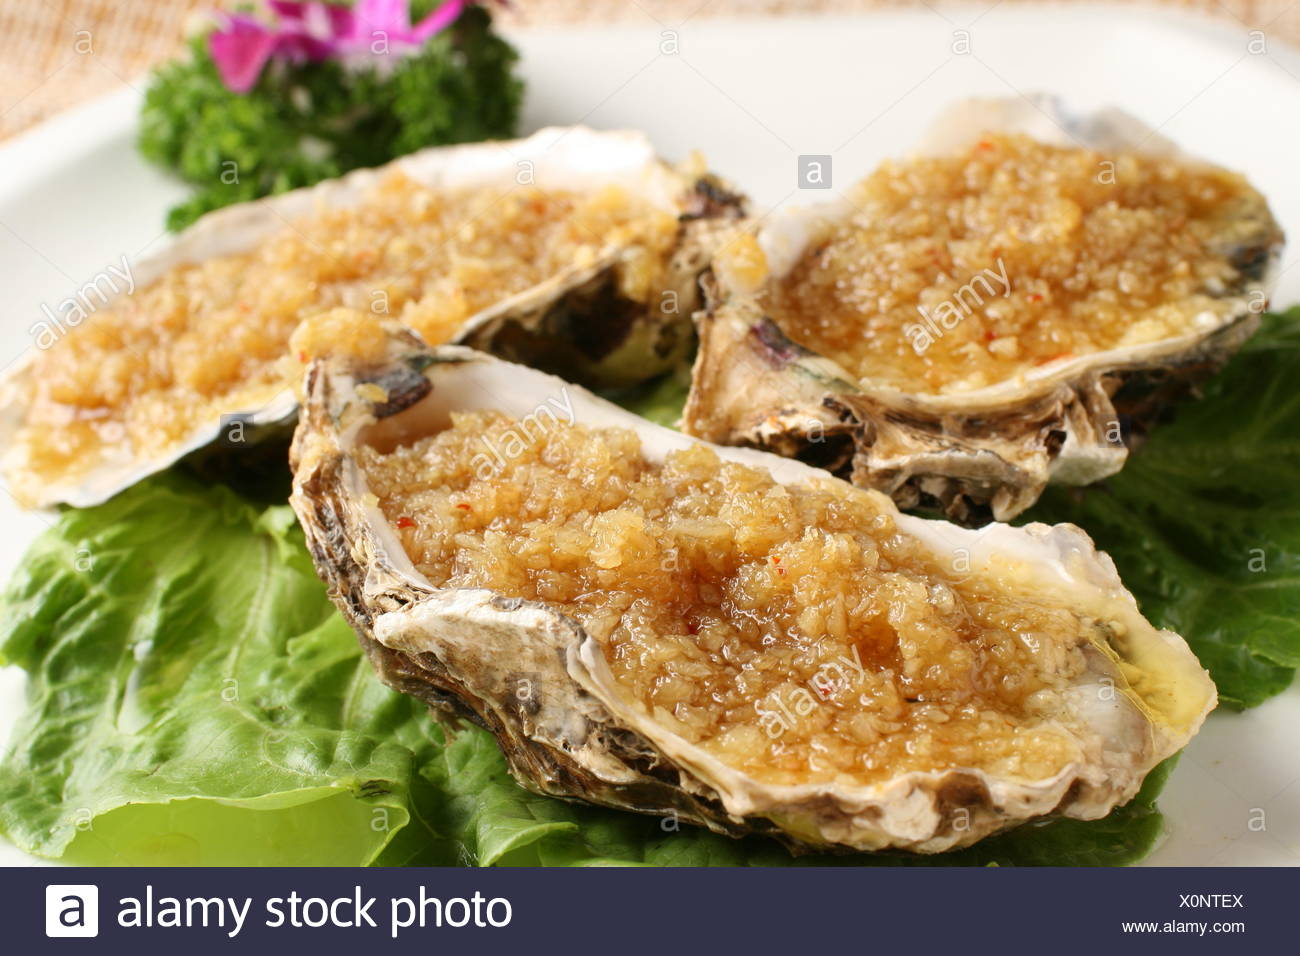 Grilled oysters Stock Photo: 275846114 - Alamy